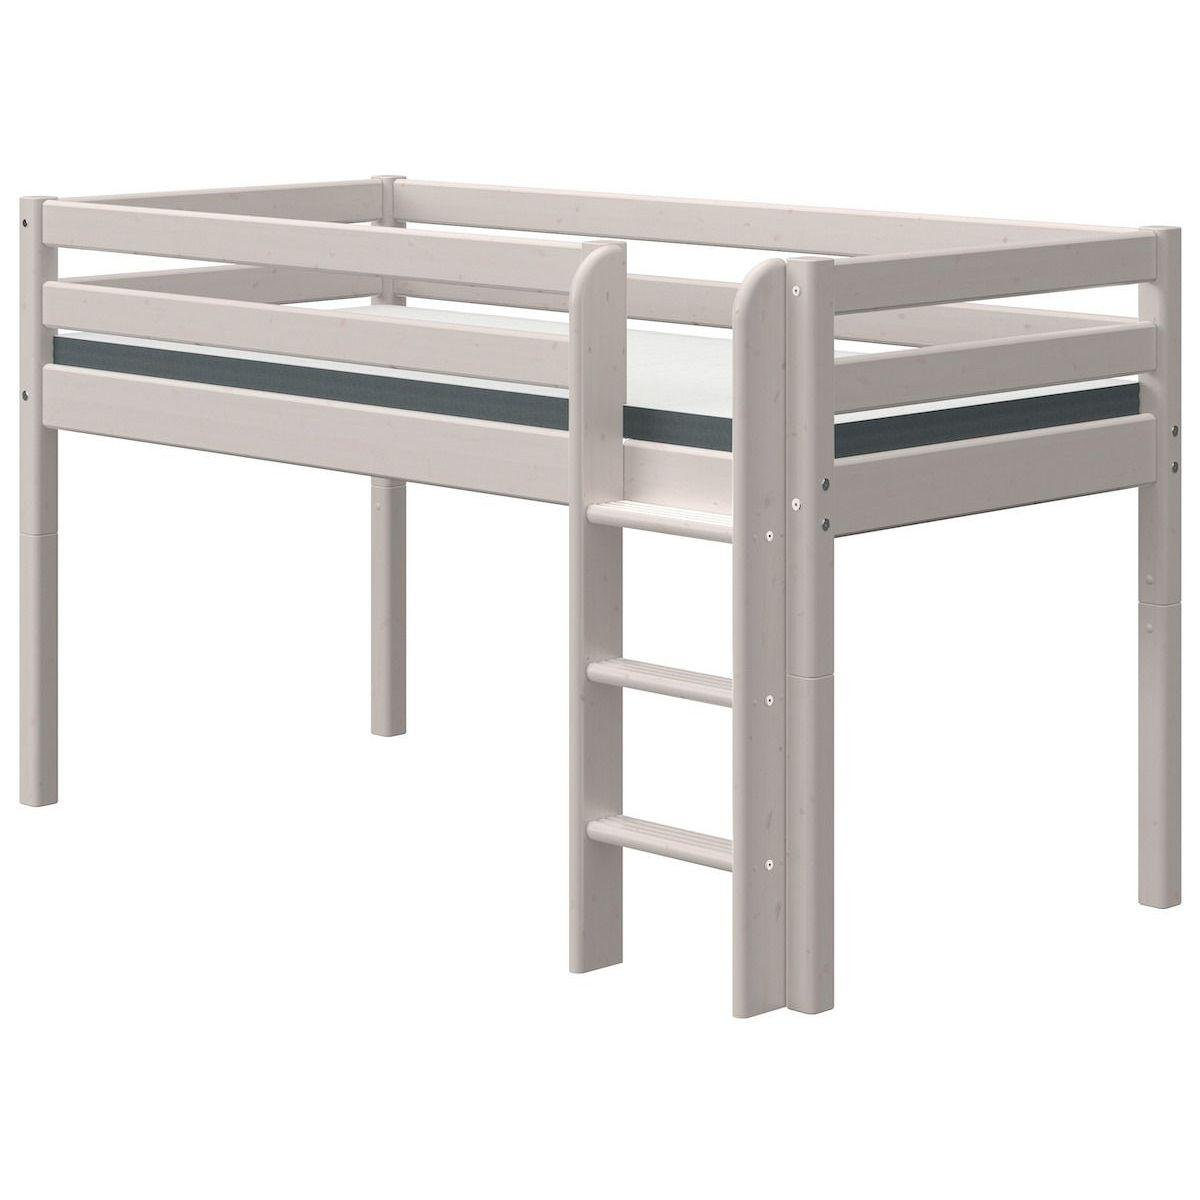 Cama media alta 90x200cm escalera recta CLASSIC Flexa grey washed